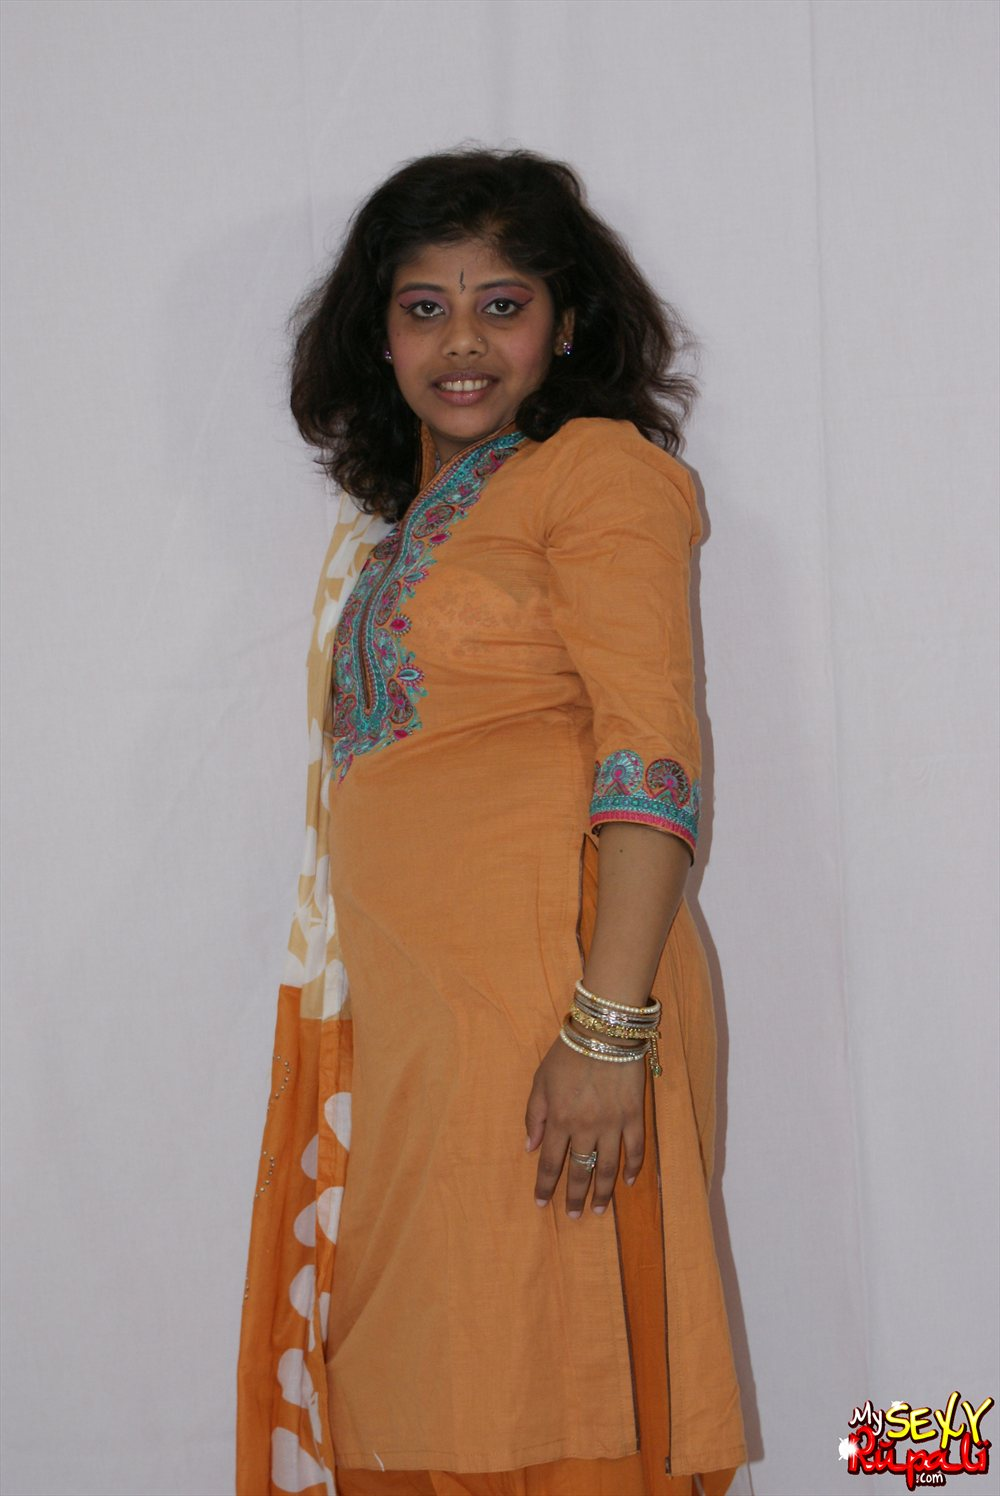 Pic gal  3. Rupali chaning her traditional indian outfits